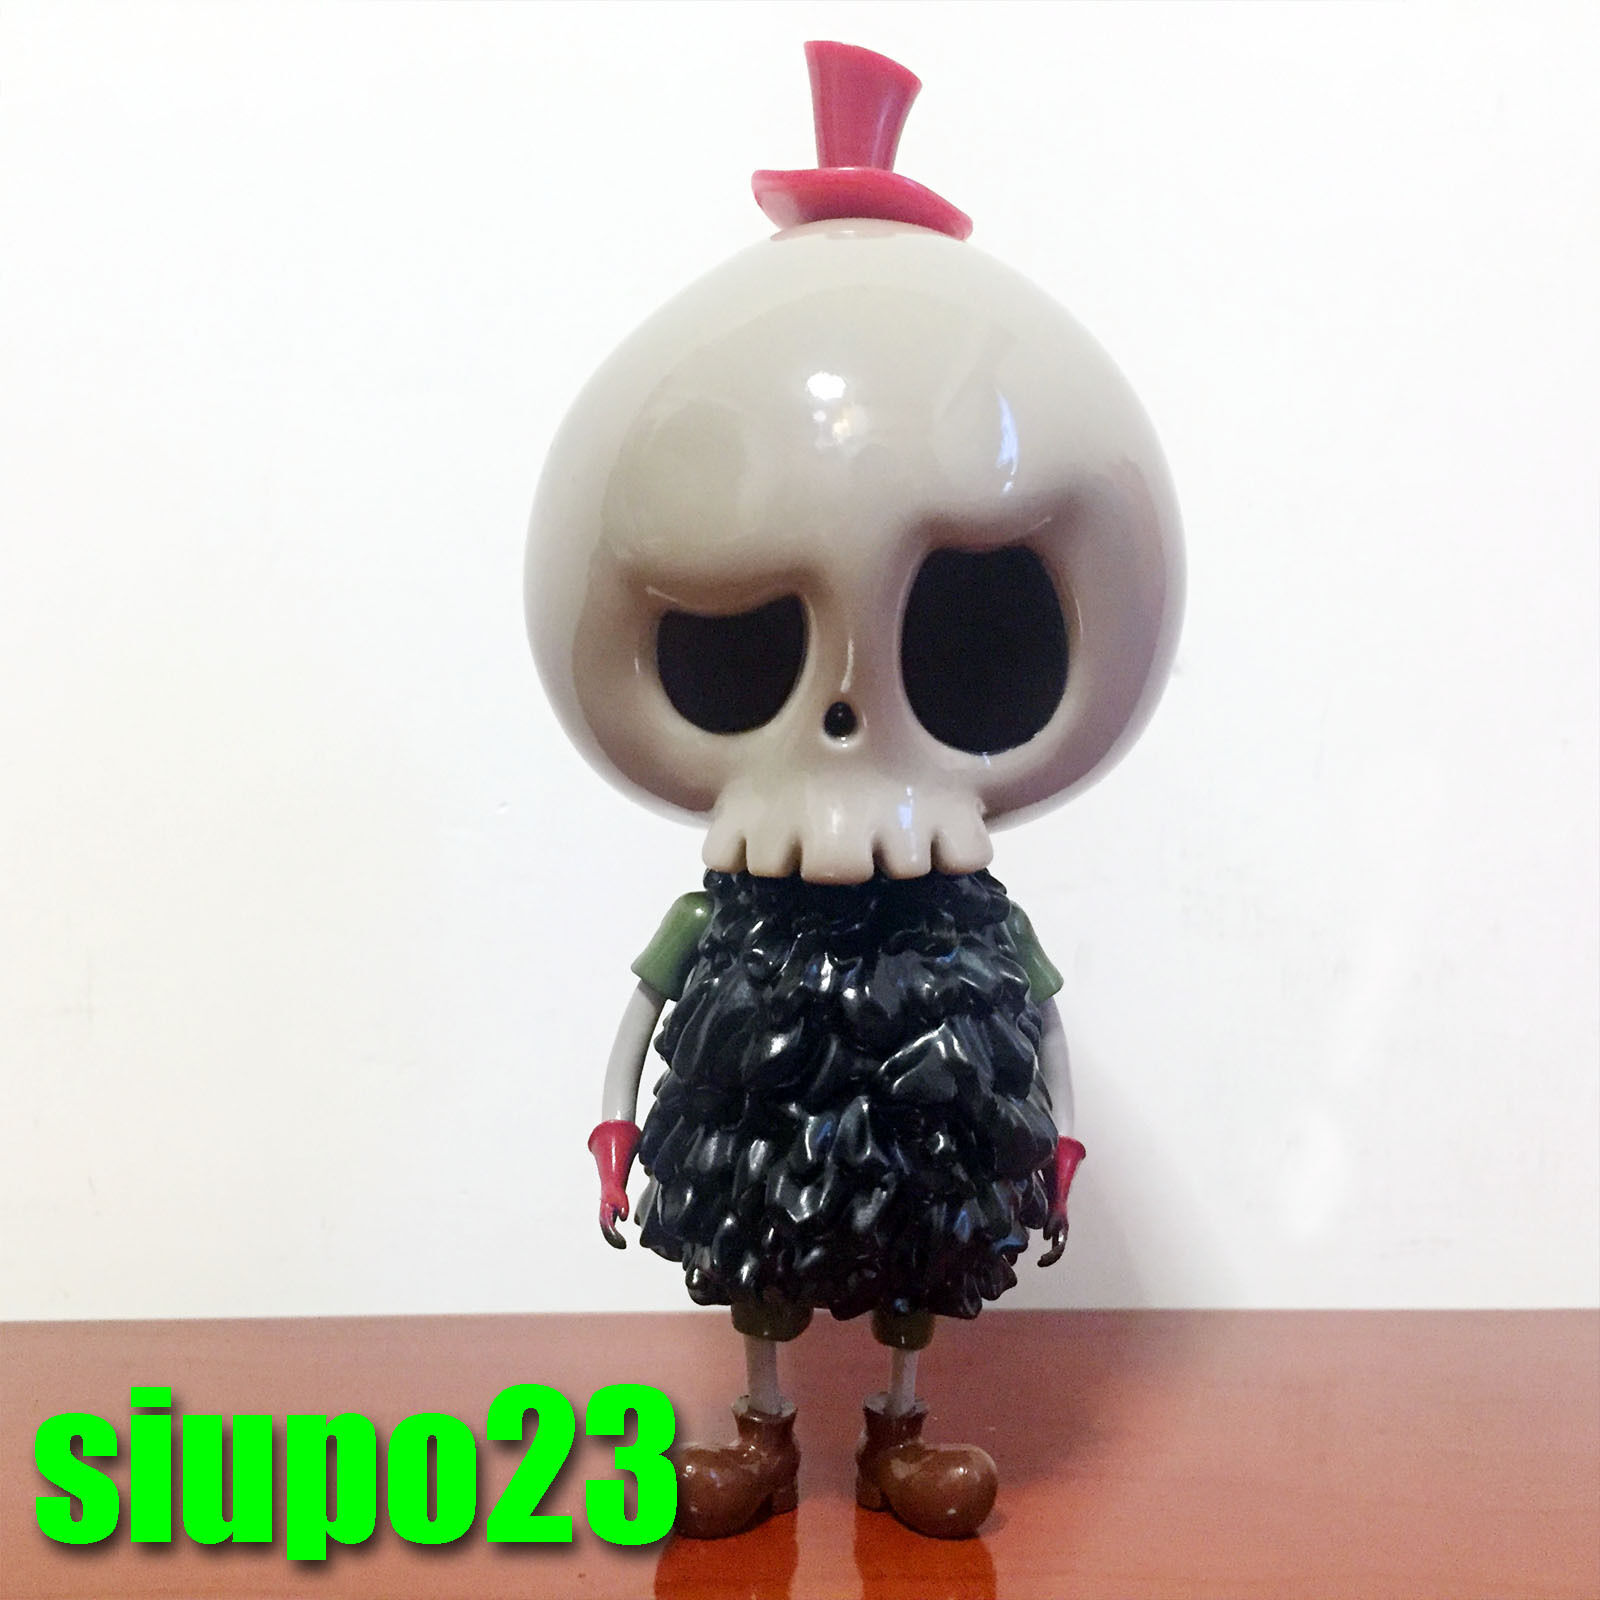 Kasing Lung x How2work Tycoco 1st Sofubi Figure